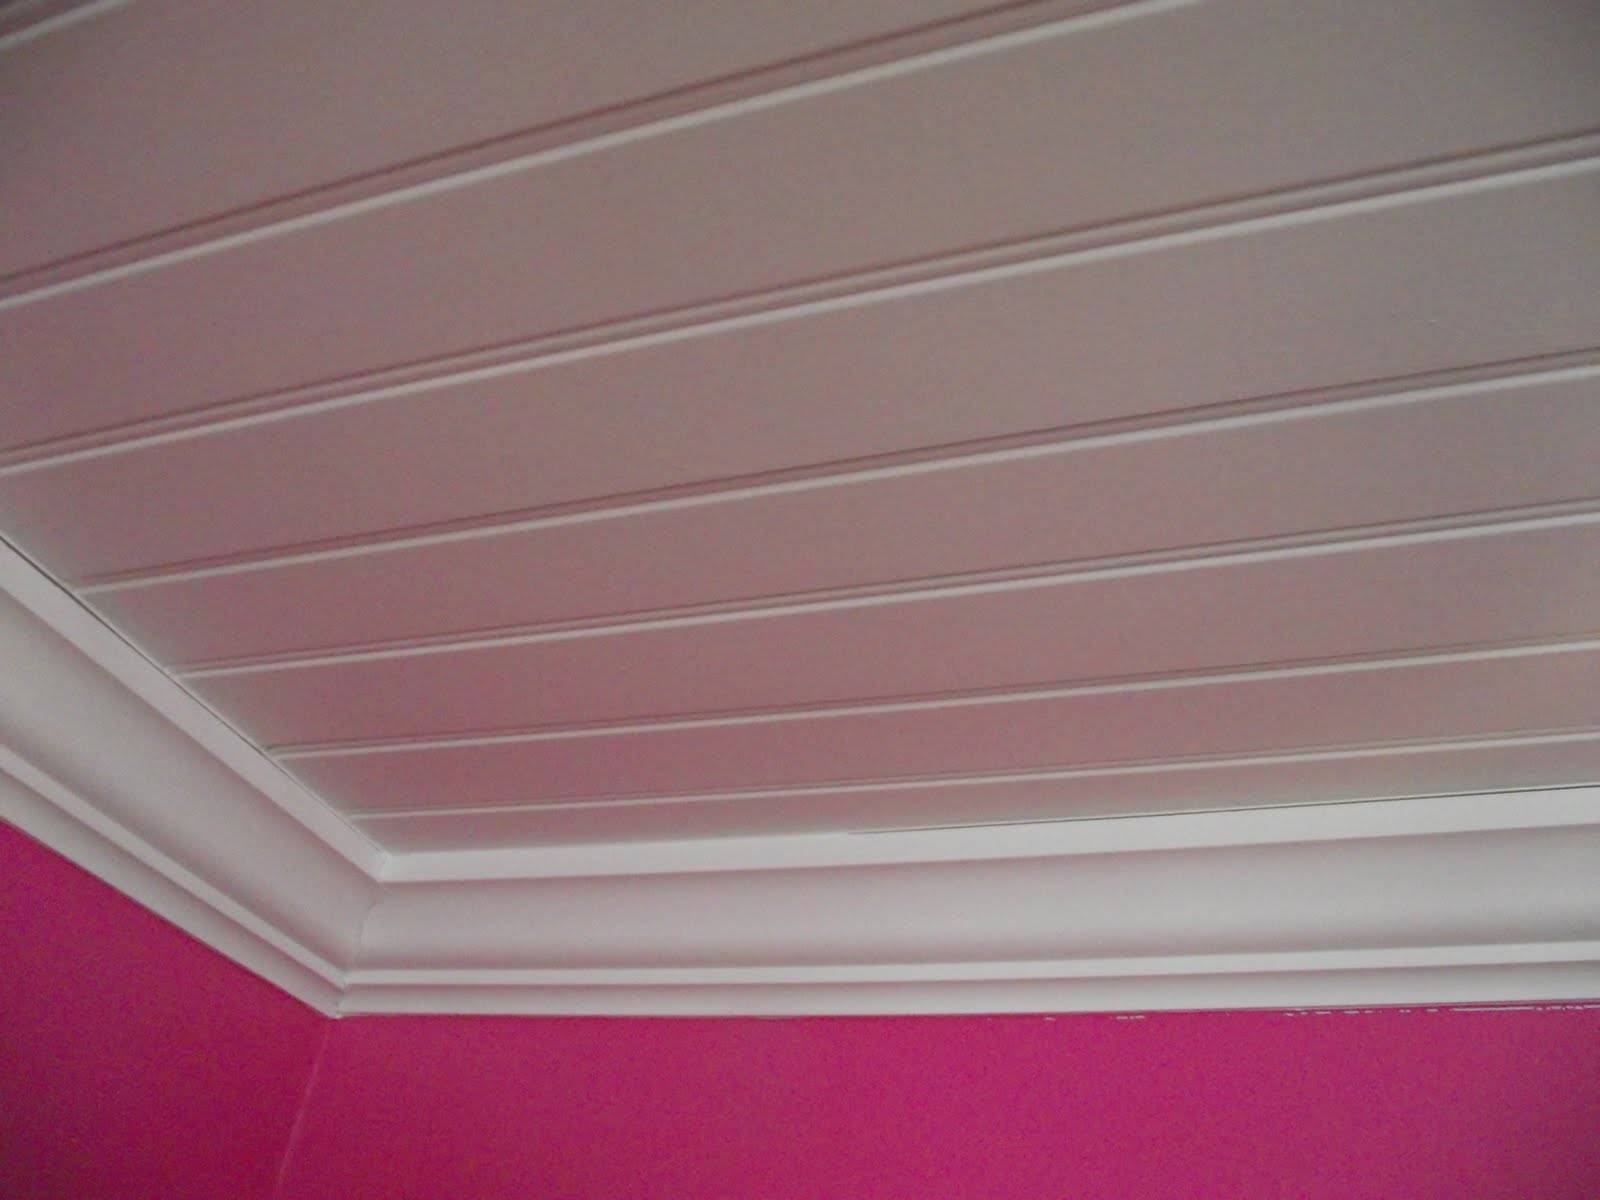 Serendipity Chic Design Putting Bead Board Ceiling Tutorial